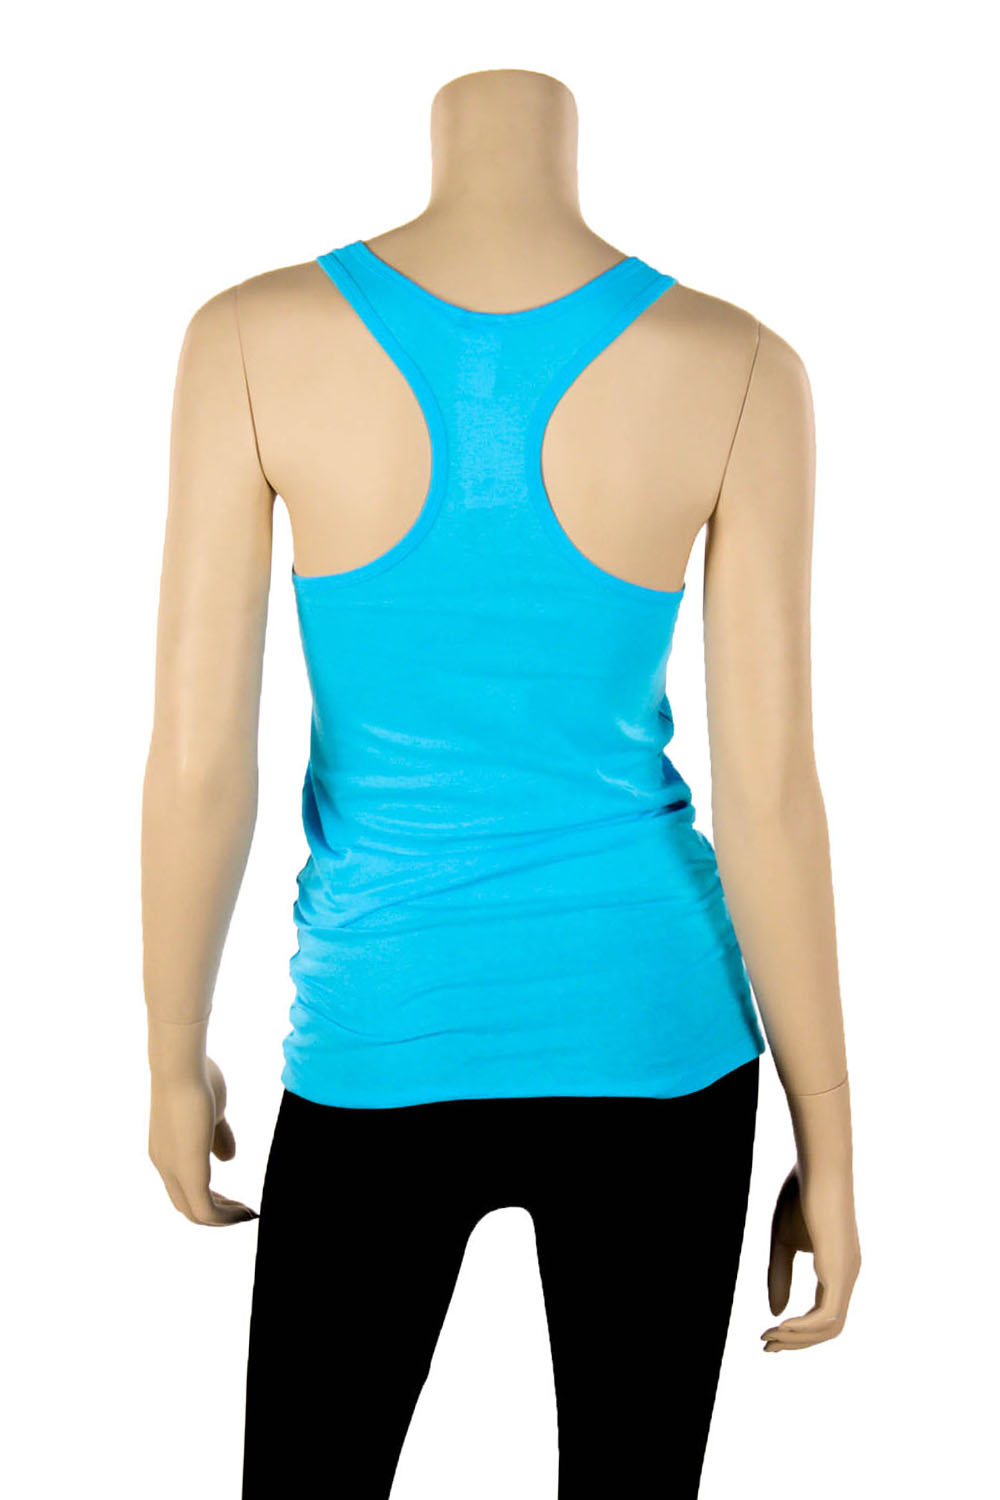 Womens-100-Cotton-Racerback-Tank-Top-Basic-Cami-Solid-Tee-Shirt-Workout-S-M-L thumbnail 3